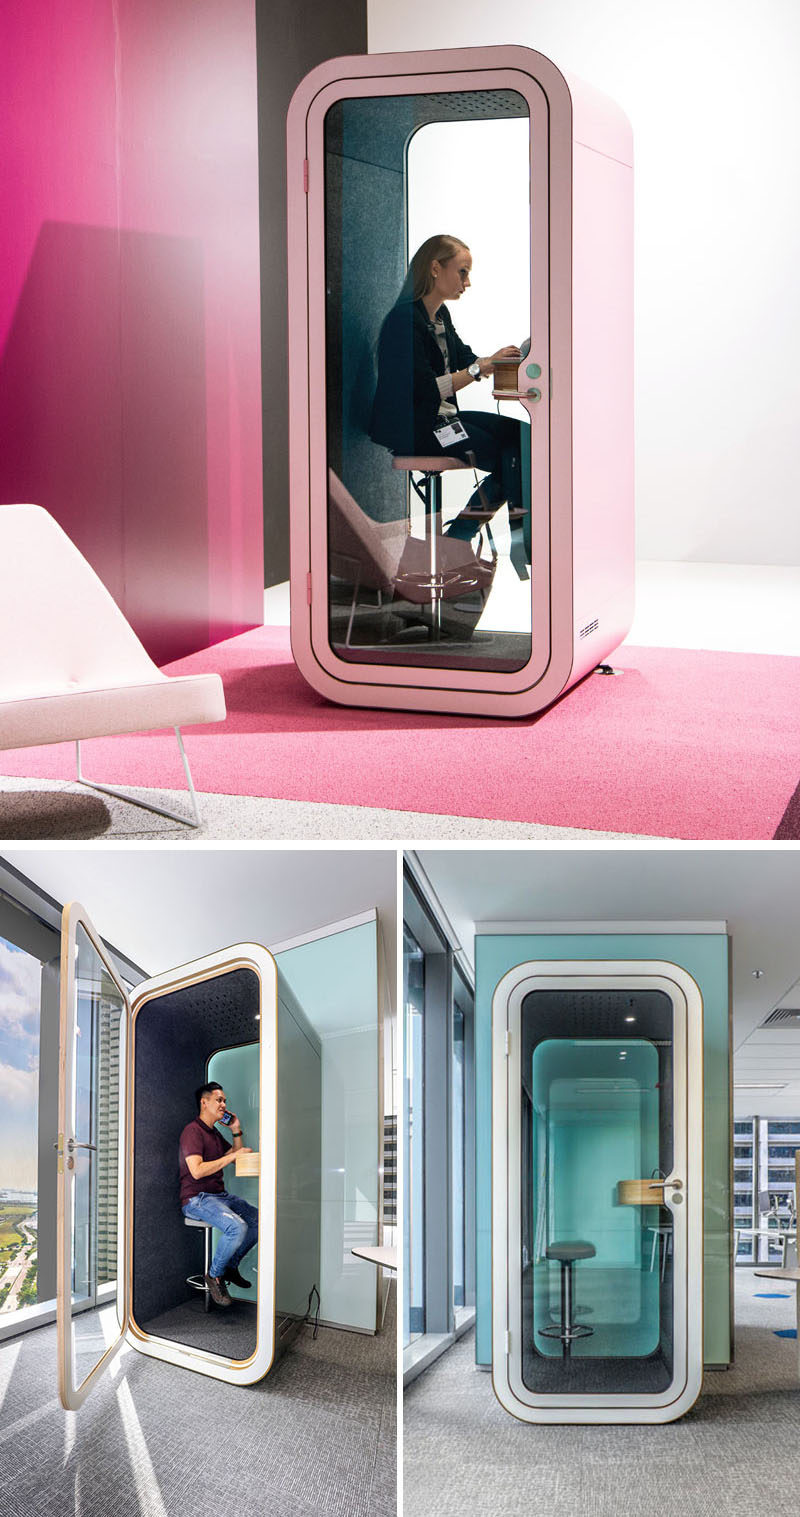 Framery, A Finnish Technology Startup, Designs And Manufactures Stylish  Soundproof Phone Booths And Meeting